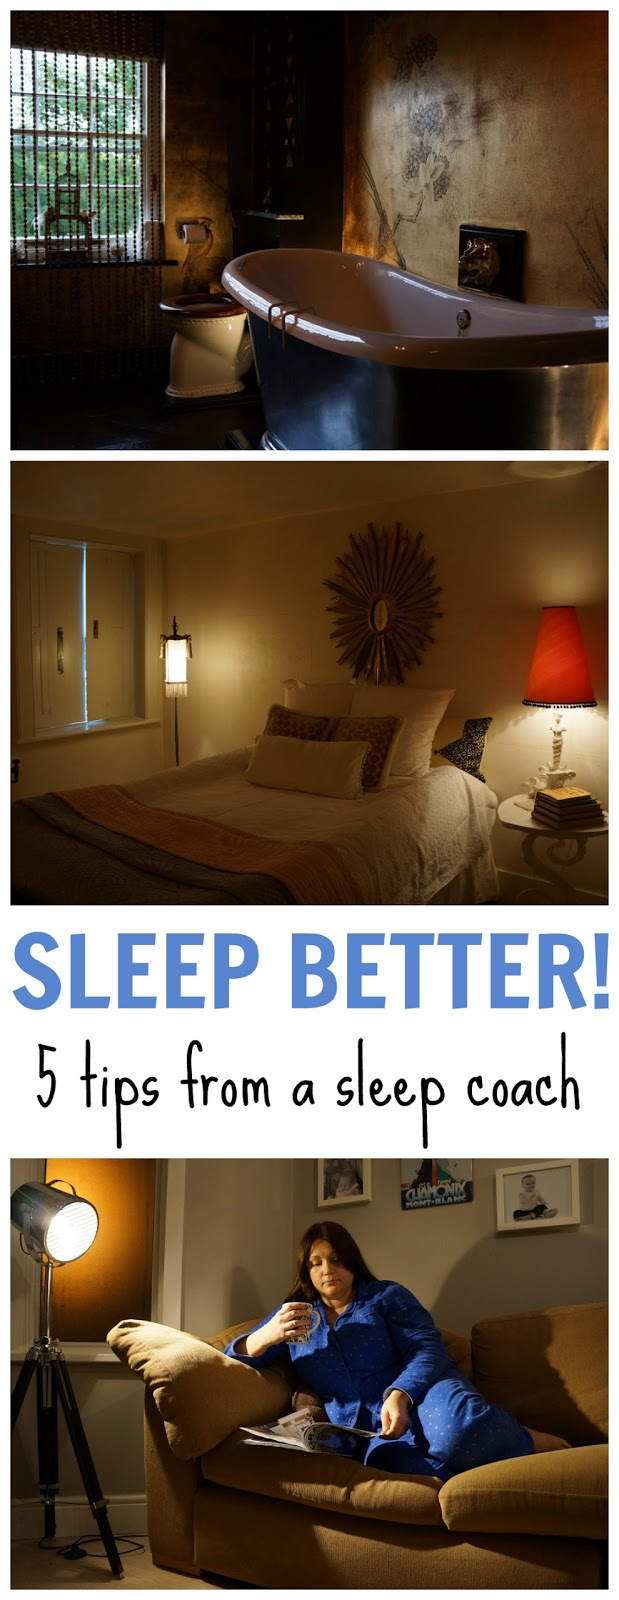 Sleeping better: 5 top tips from a sleep coach to the Olympians. If you have trouble falling asleep this post gives several tips how to get a better sleep routine.